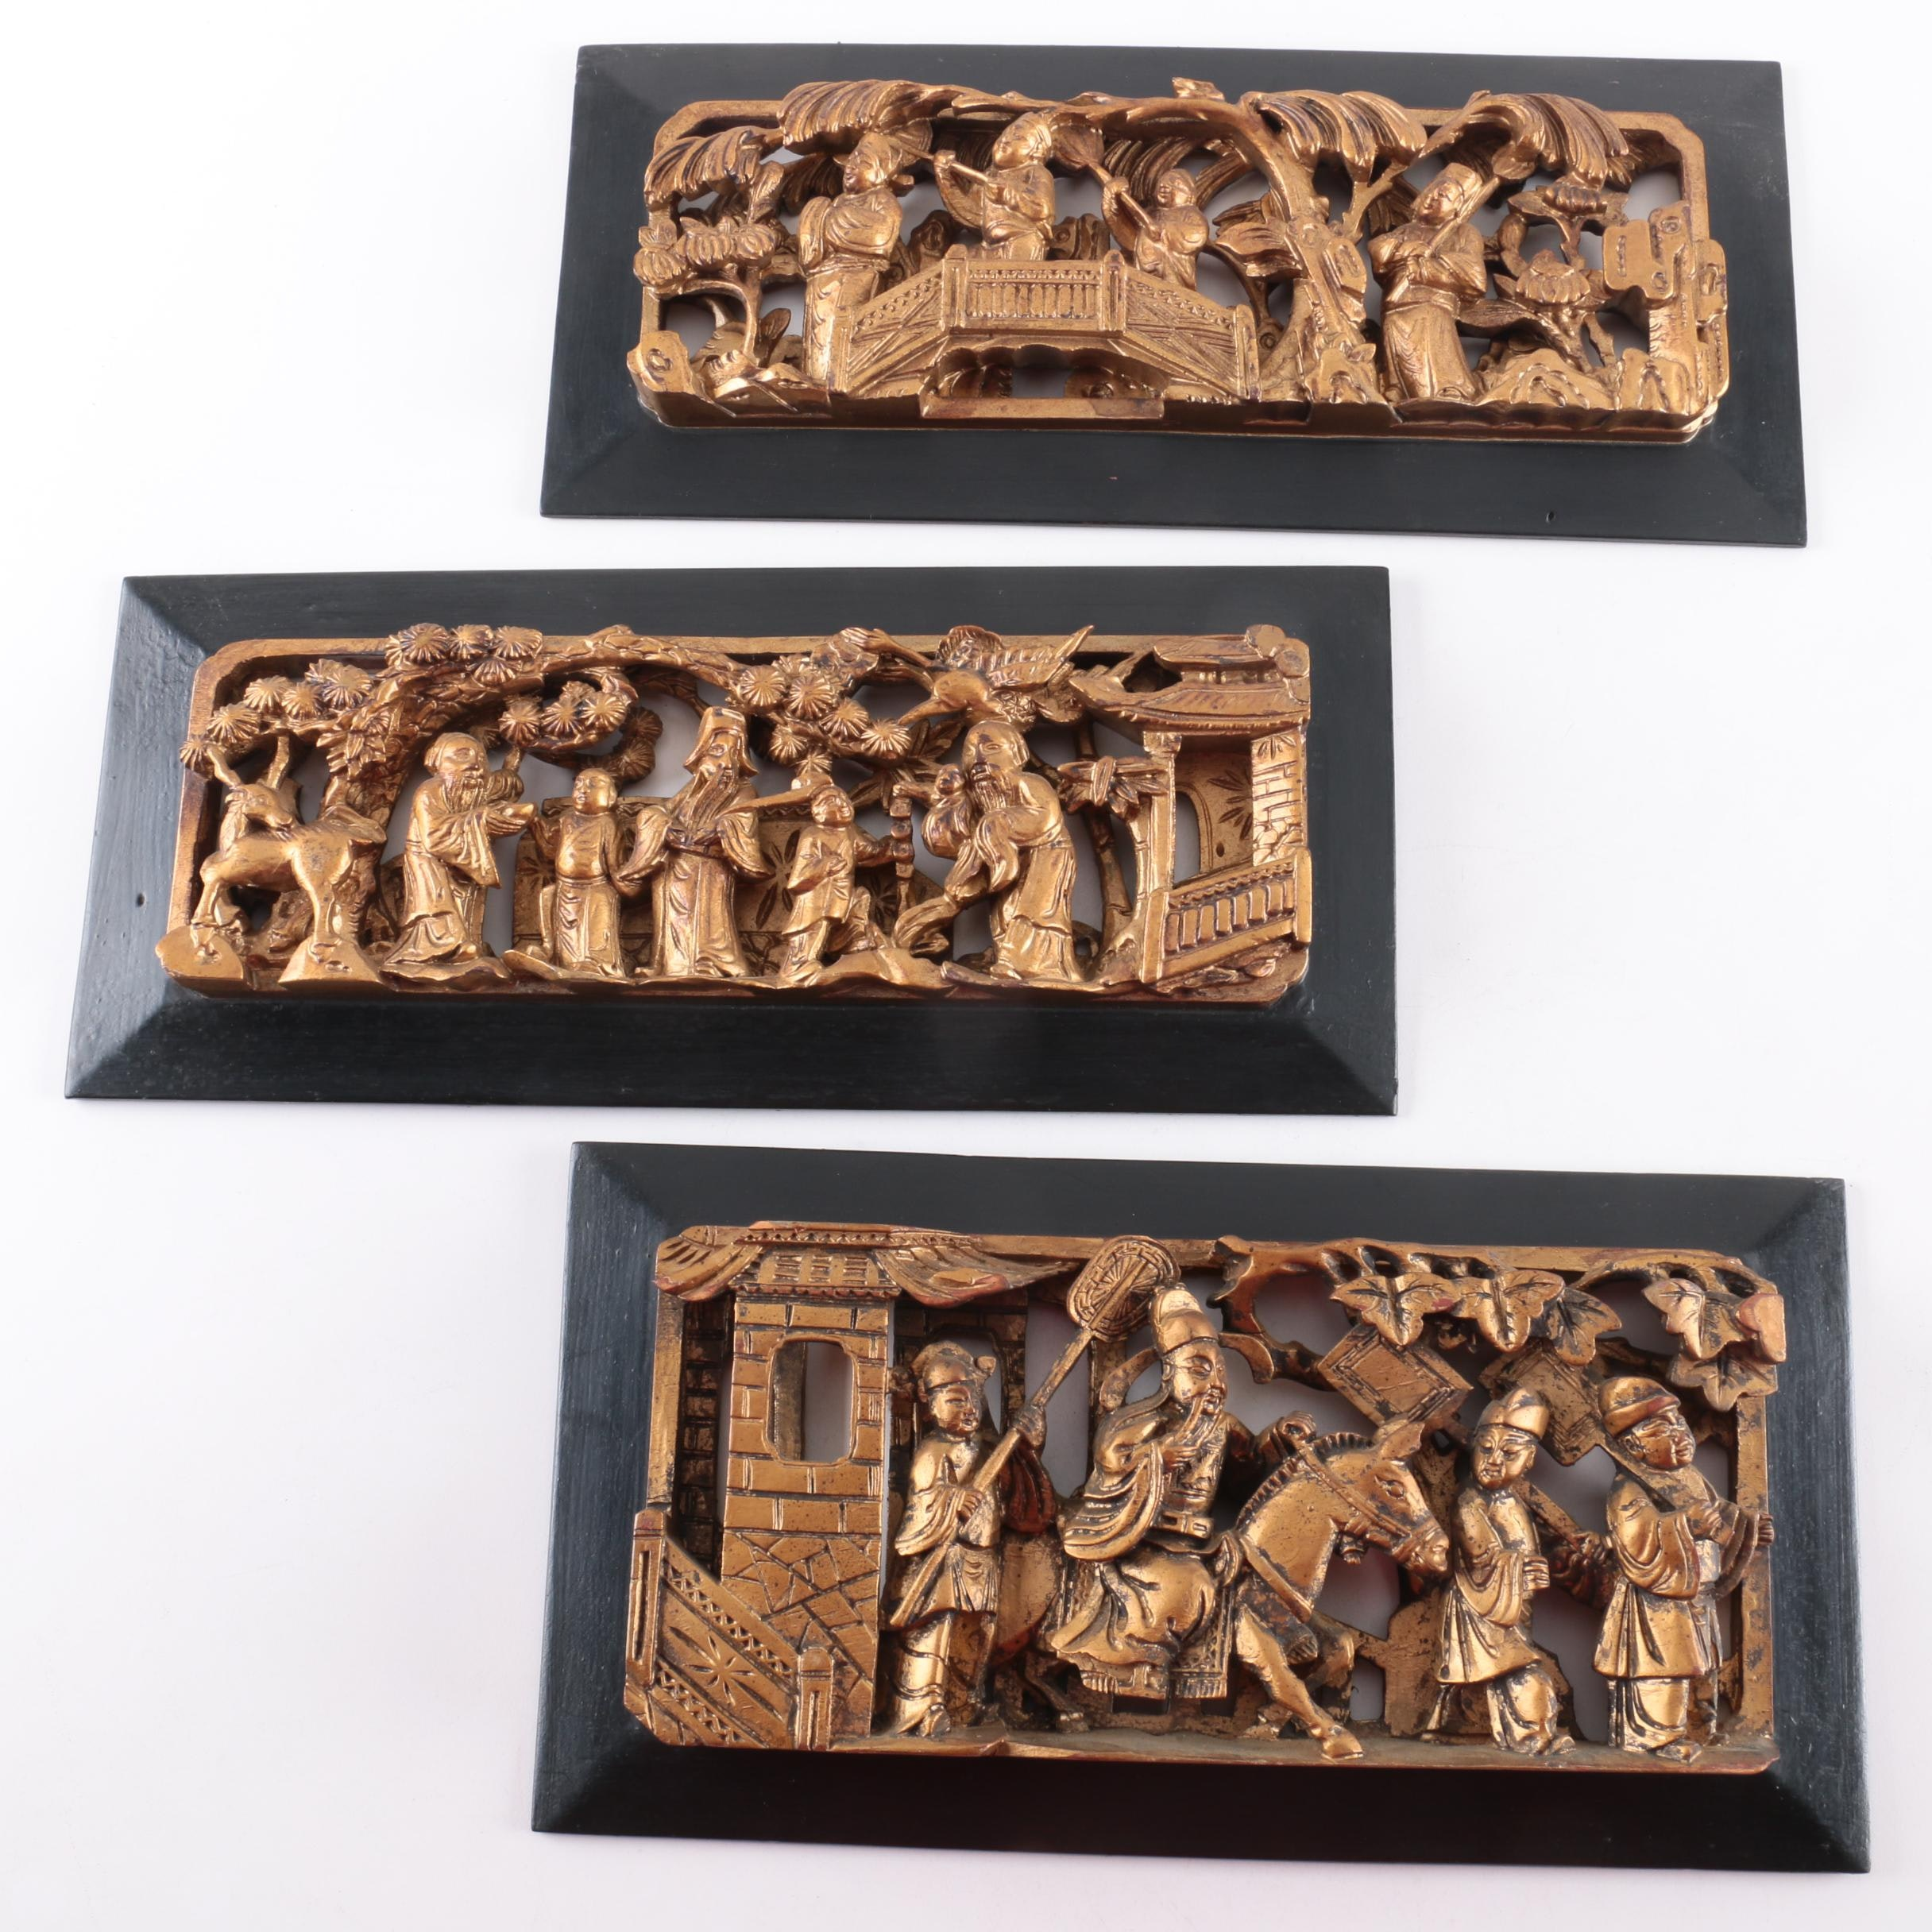 Chinese Wooden Relief Carvings